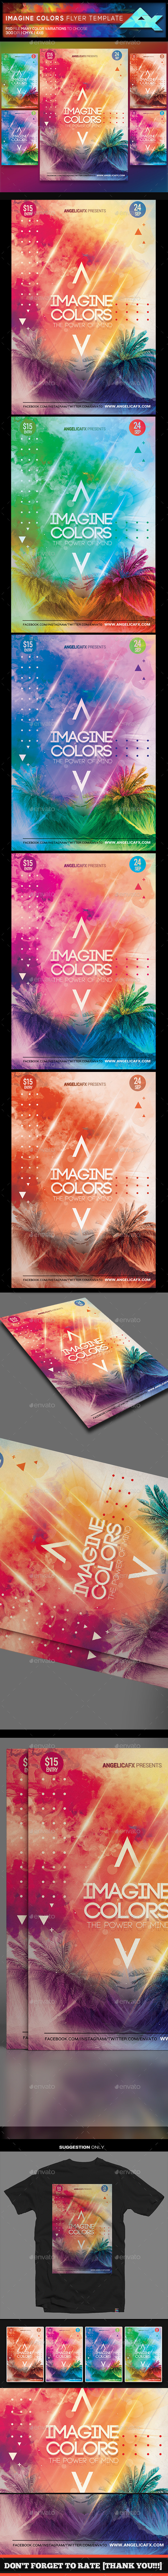 Imagine Colors Flyer Template - Flyers Print Templates